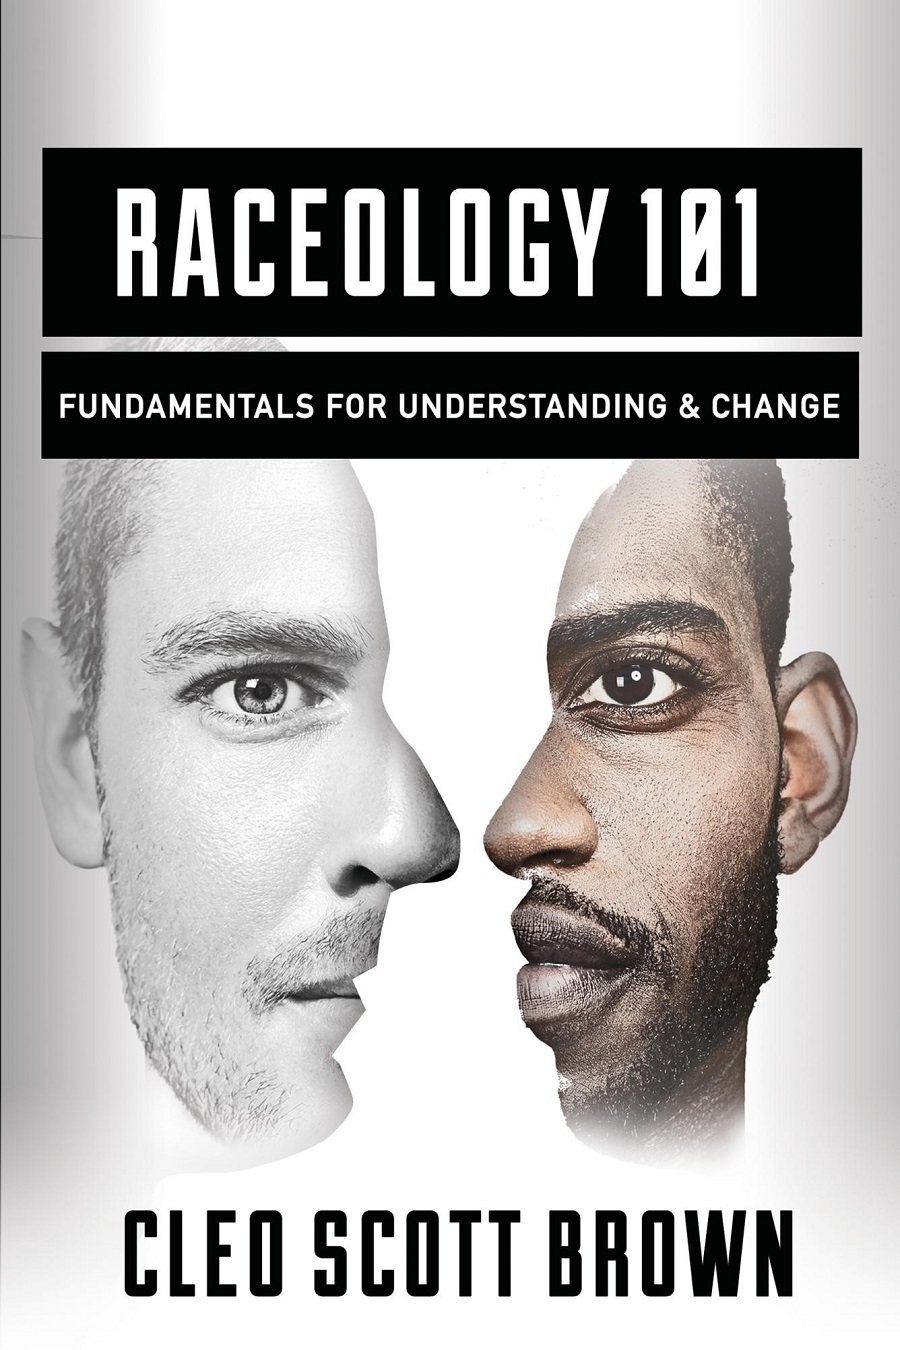 Raceology 101  is a collection of writings that will take everyone back to the basics—those fundamental issues that must be clearly understood and addressed to make meaningful progress in improving race relations.   READ MORE   ….